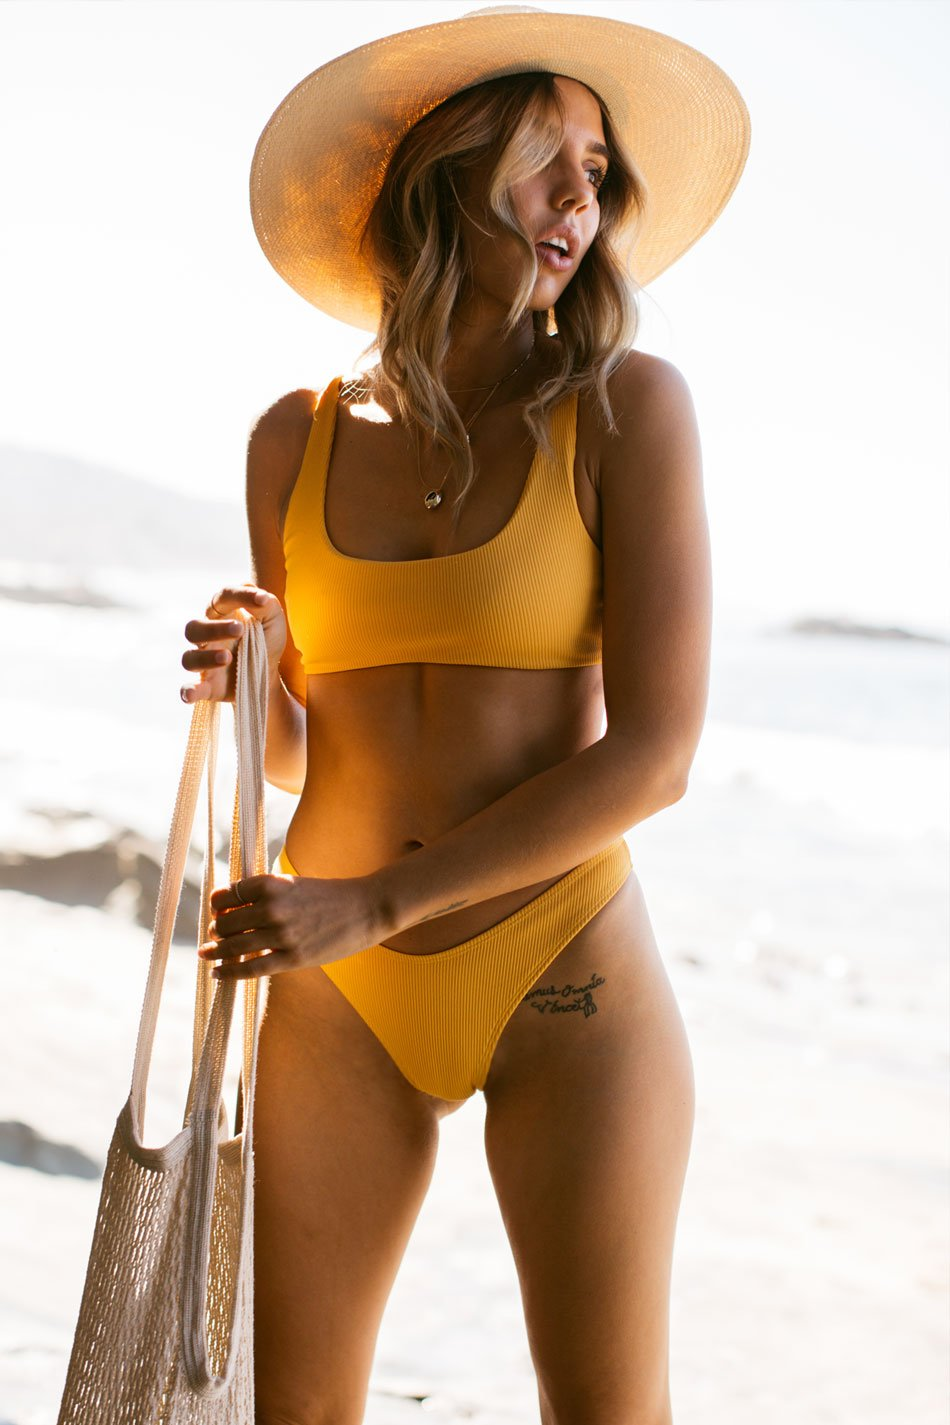 Wave Babe Swimwear Mango Yellow Orange Minimal Ribbed High Waist Cut Leg Cheeky Scoop Neck Beach Swim Bikini Swimsuit Travel Style 2019 SS19 Best Top Quality Comfort Soft Brands Fashion Hawaii California